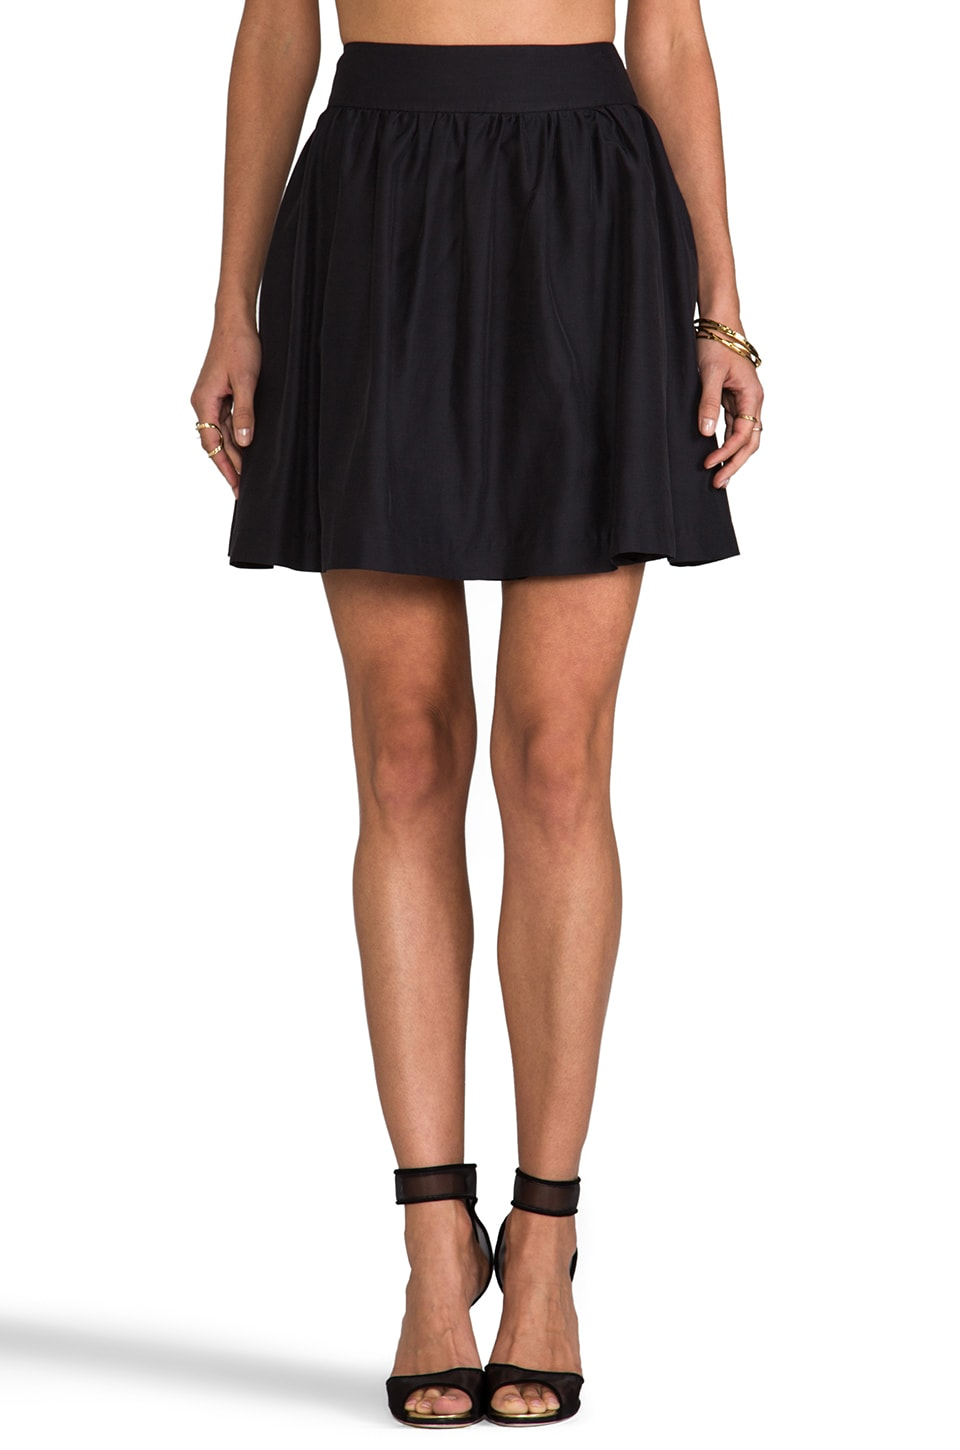 Paper Crown by Lauren Conrad Chaplin Skirt in Black